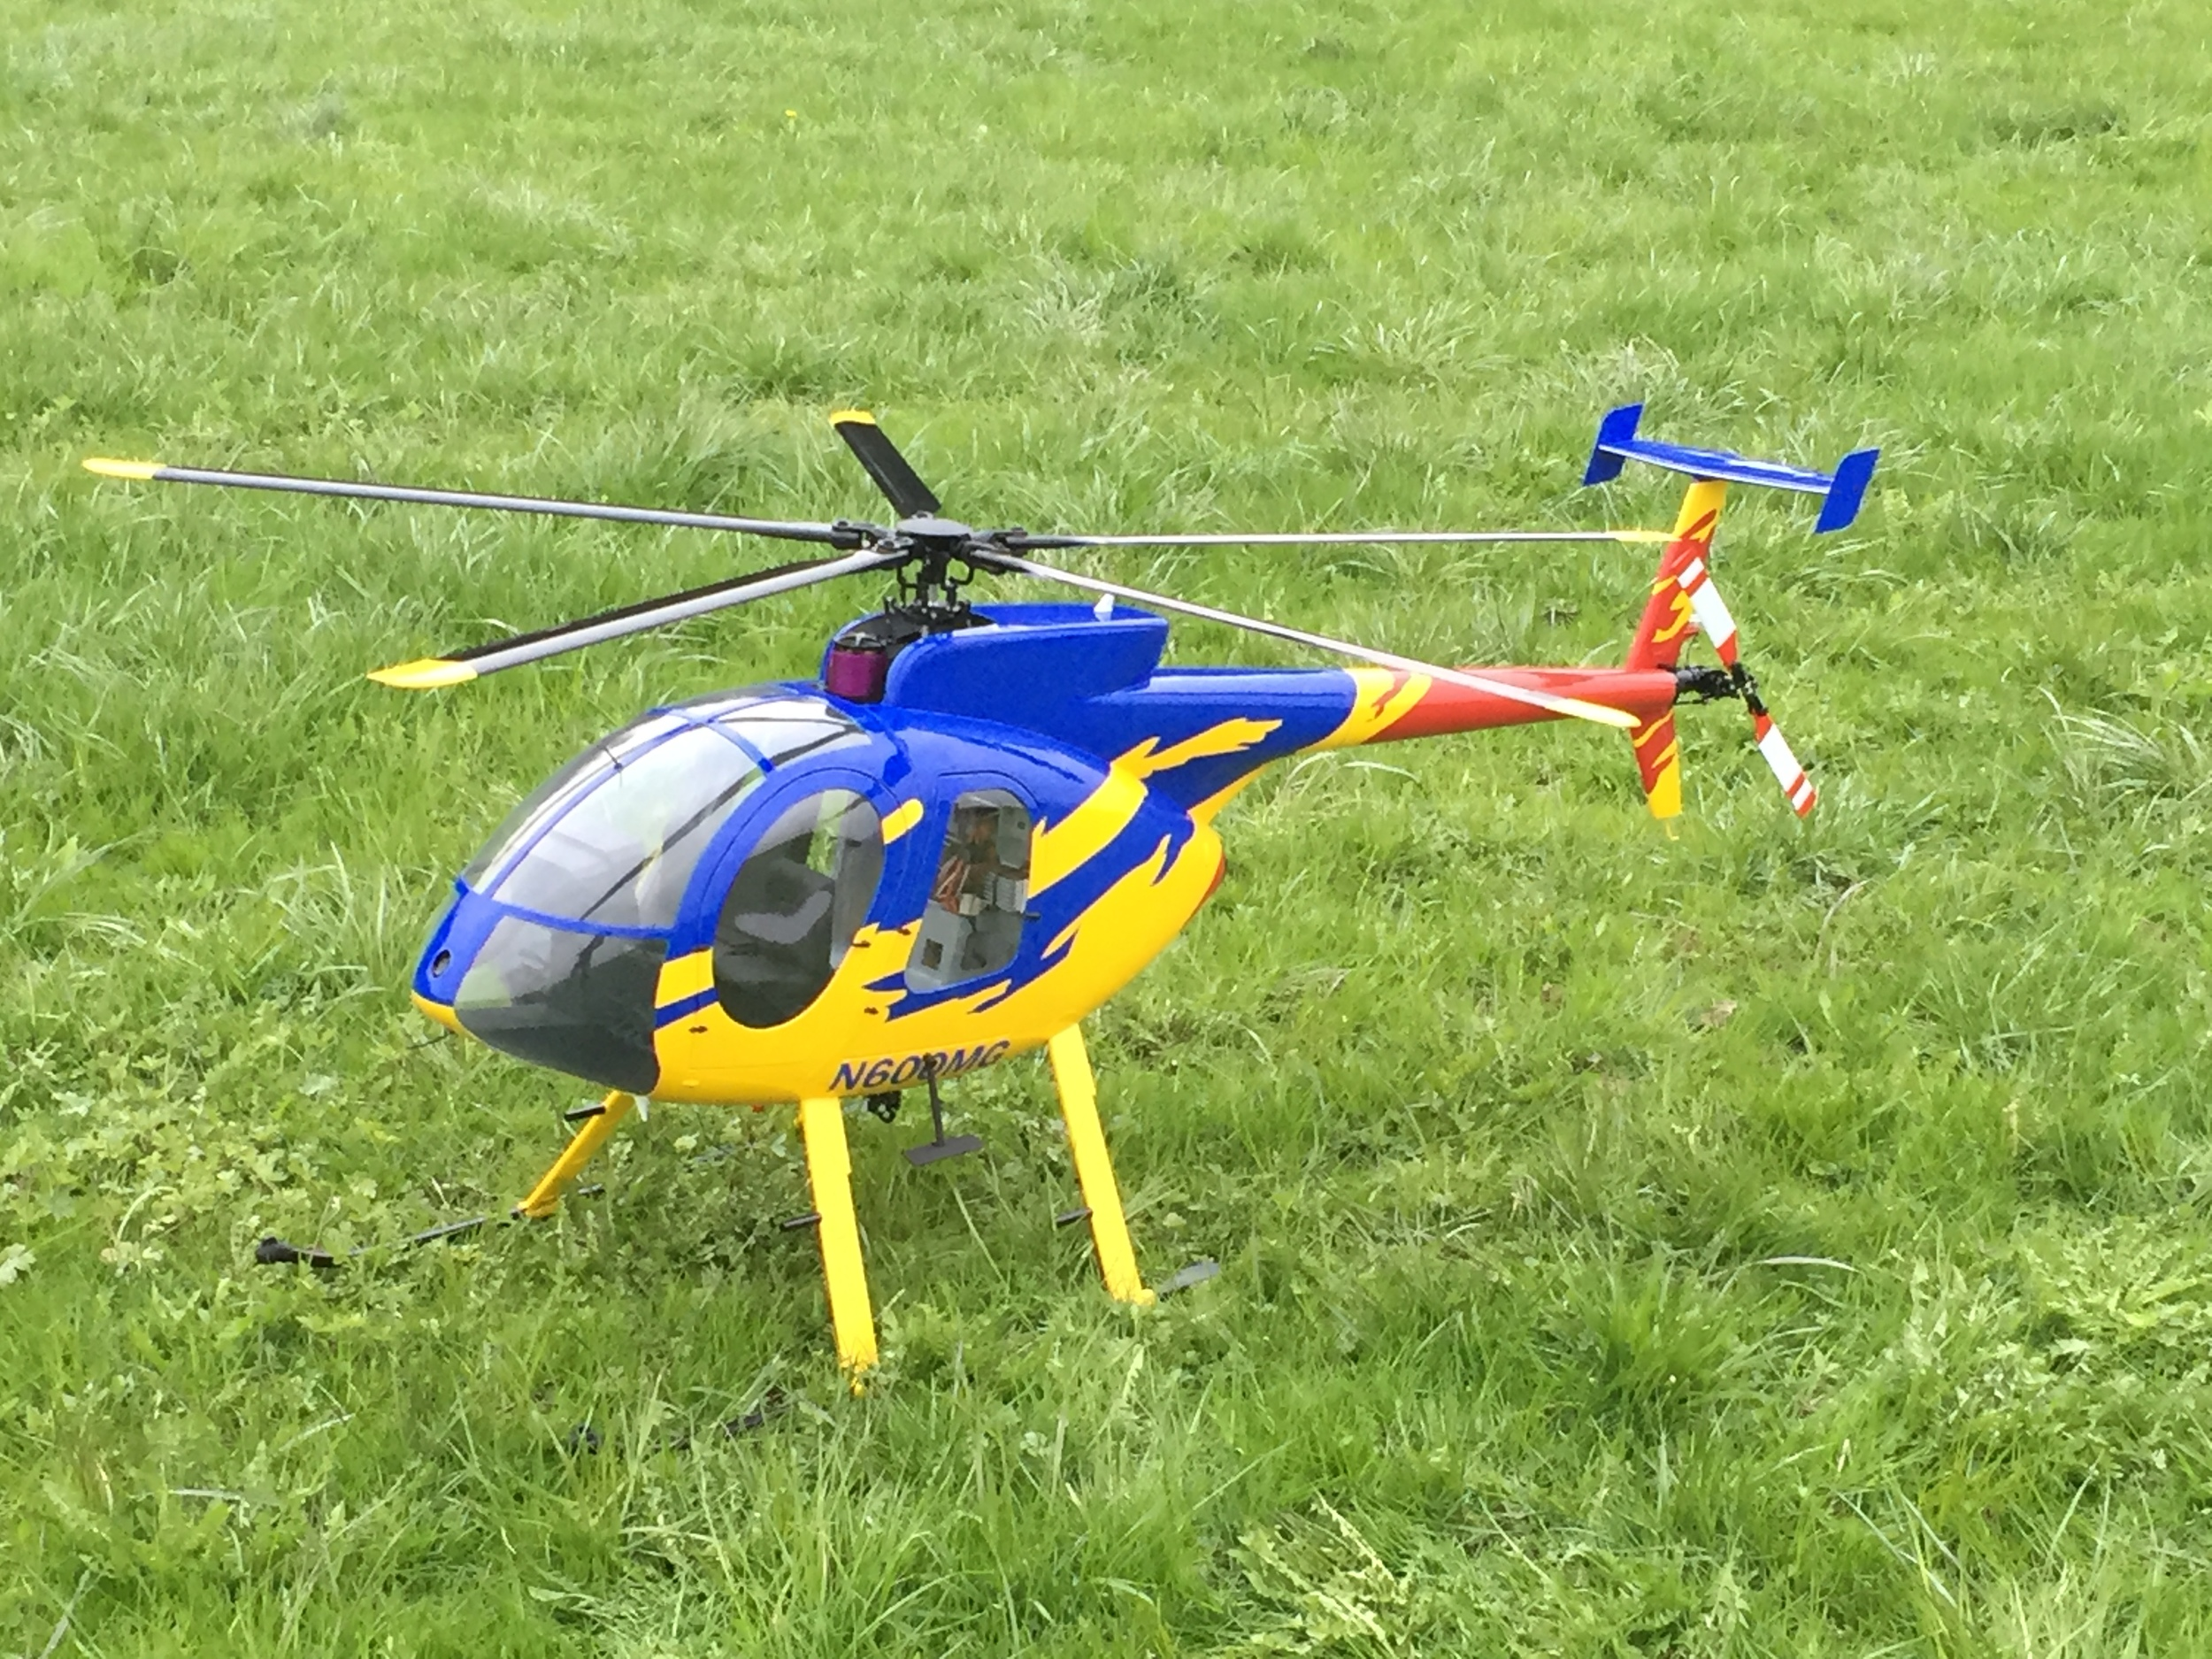 Helicopters (size 800) / Helikopter (Grösse 800) — RC HELI SCALE